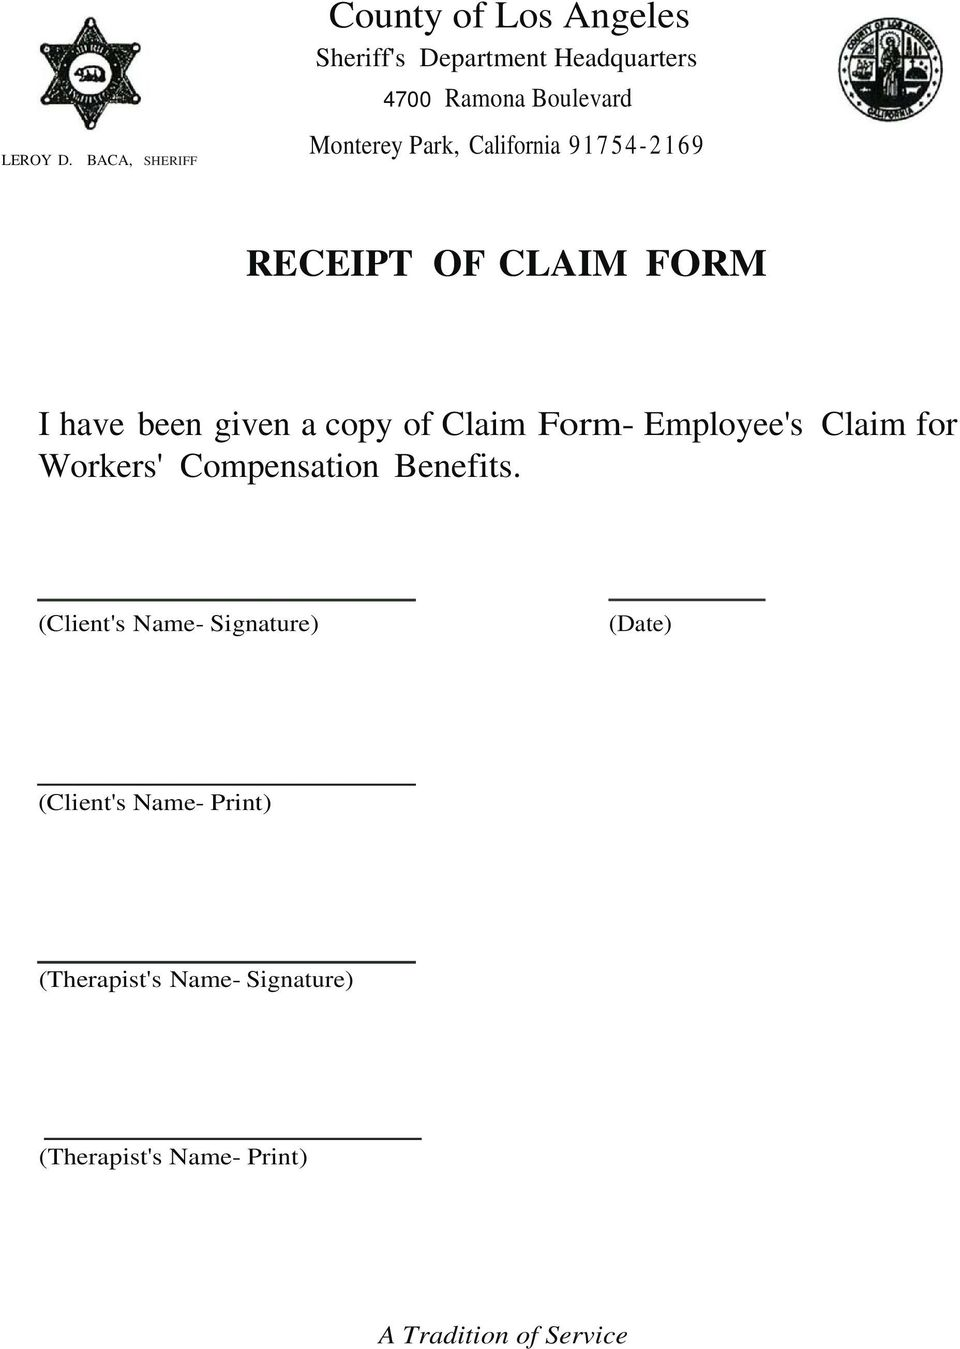 copy of Claim Form- Employee's Claim for Workers' Compensation Benefits.